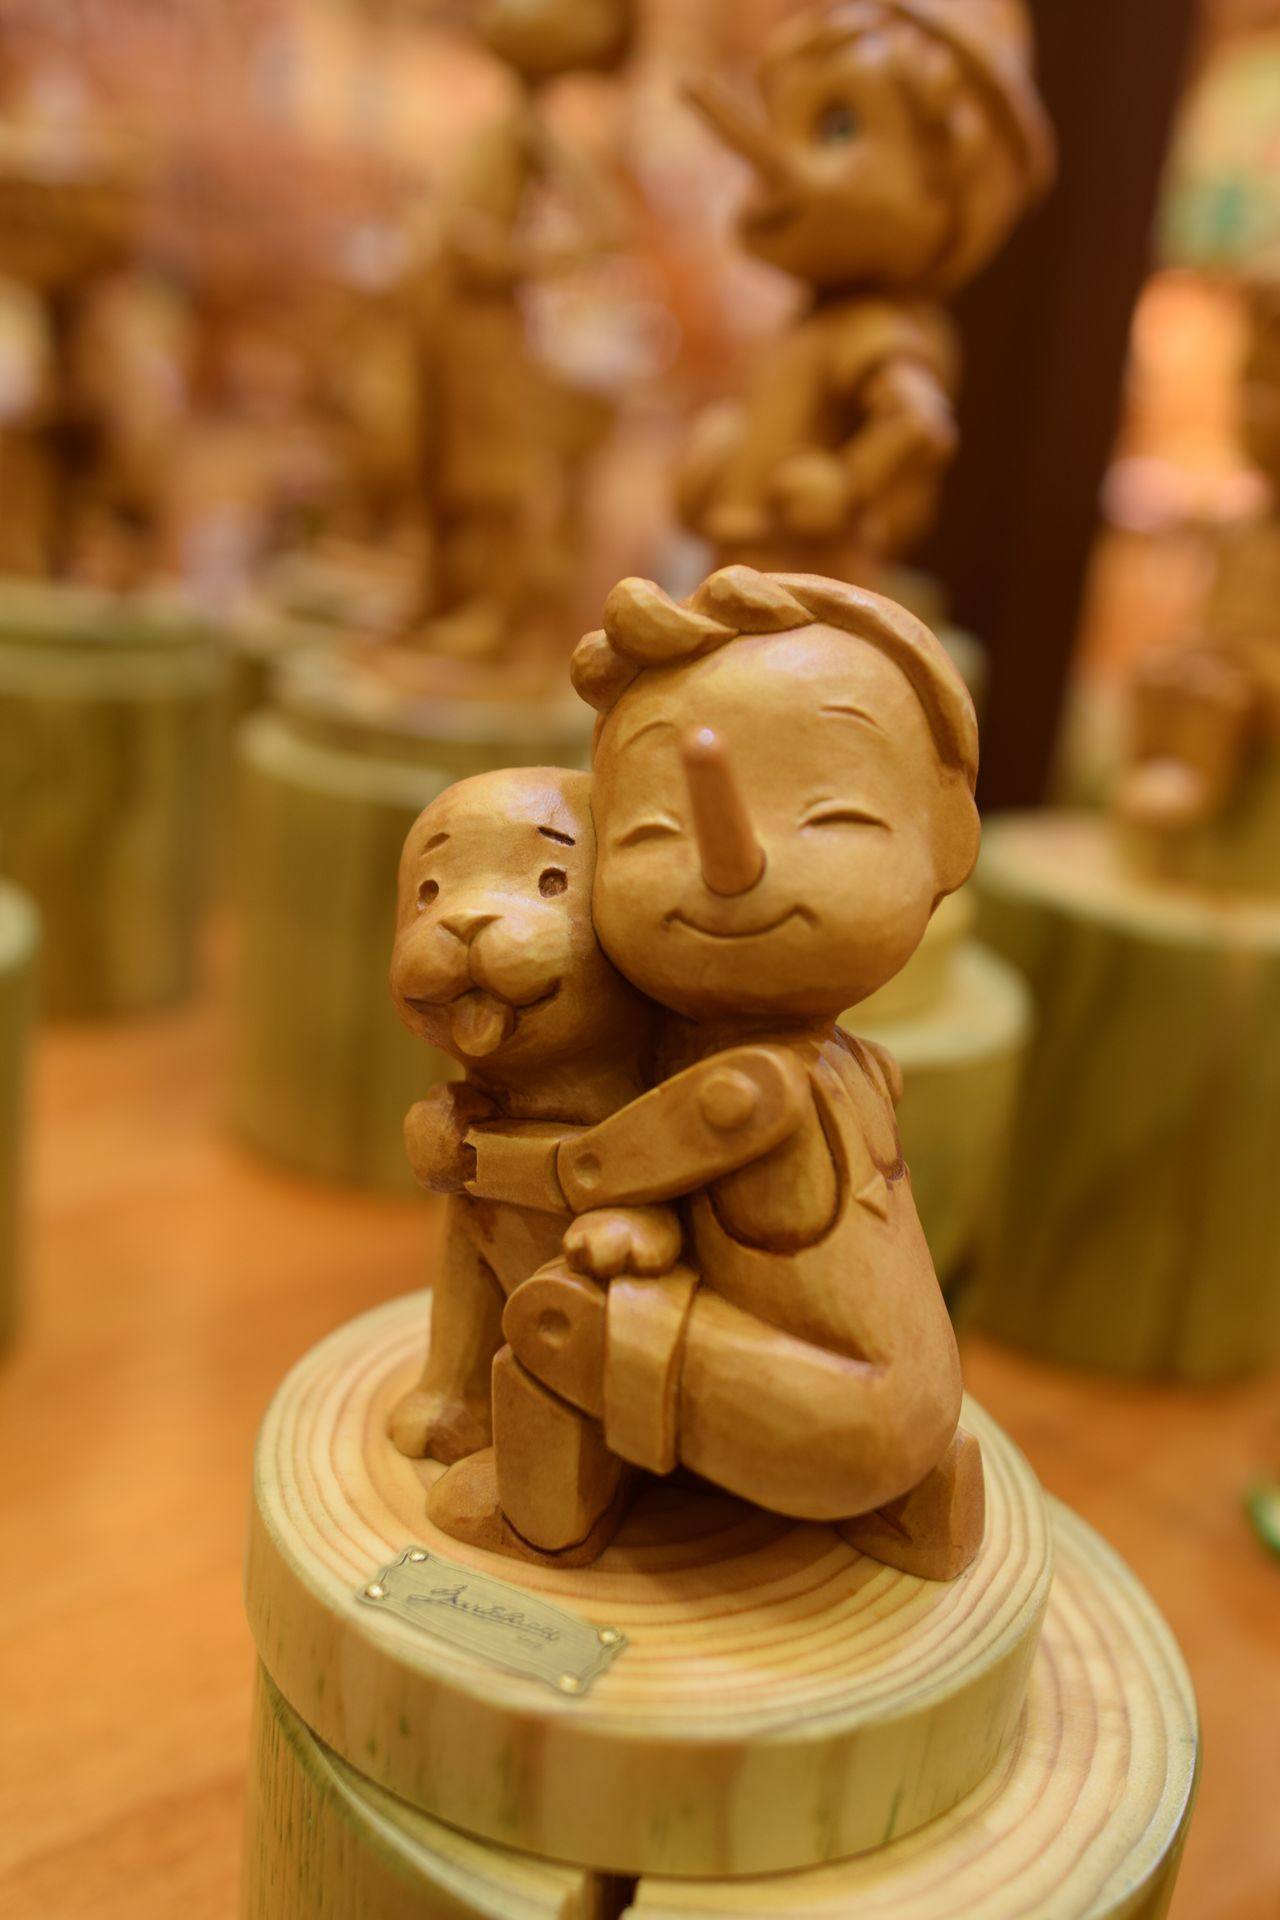 Statue Art And Craft Sculpture Indoors  Focus On Foreground Close-up No People Spirituality Religion Idol Day Florence Italy EyeEm New Here Pinochio